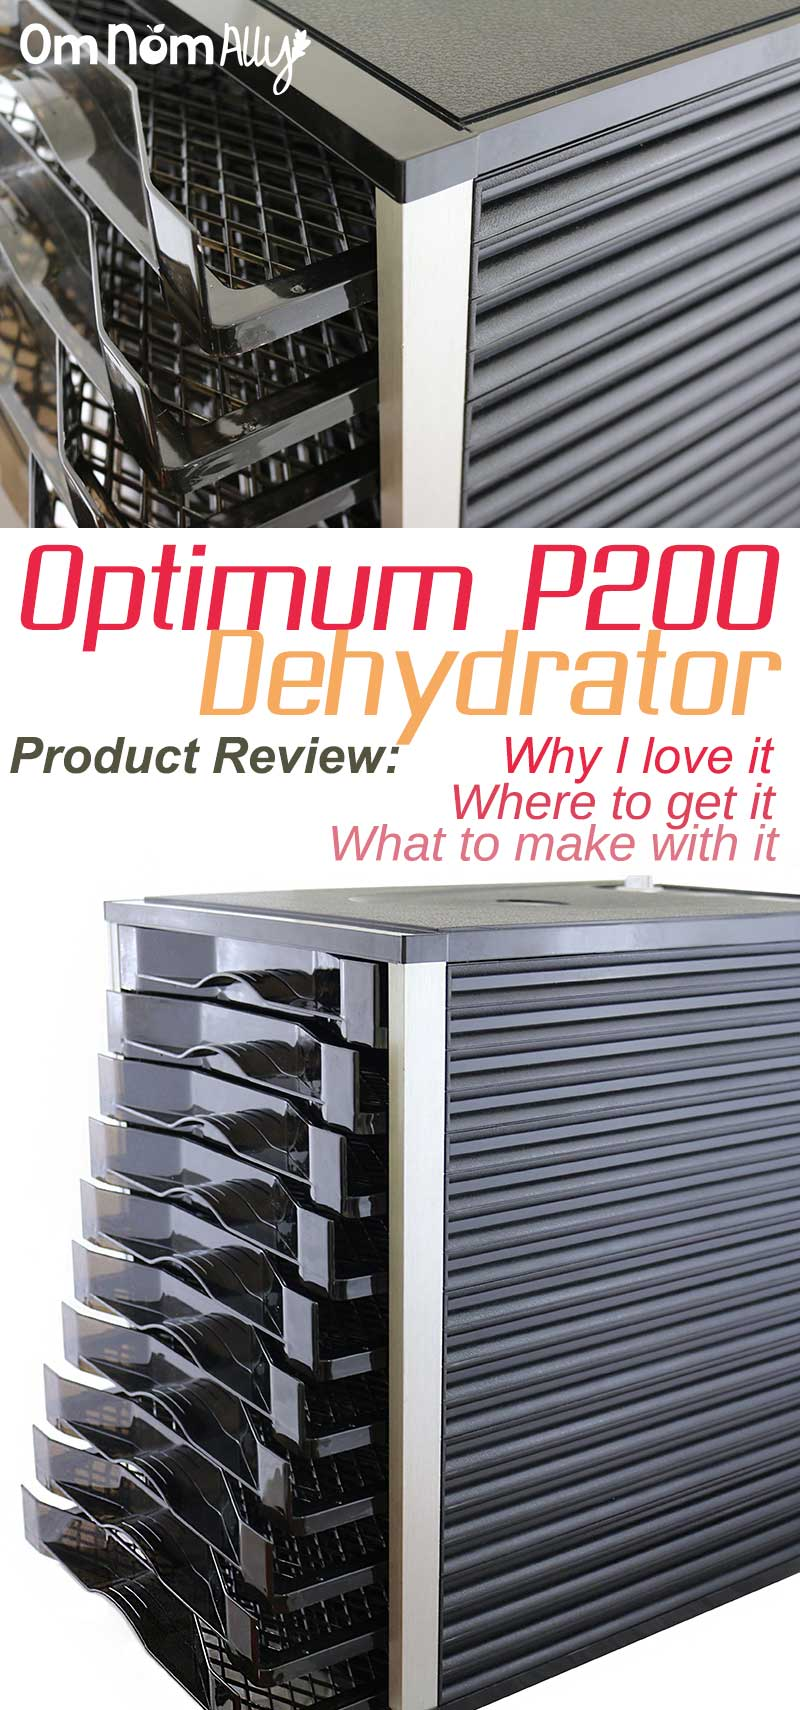 Product Review: Froothie Optimum P200 Dehydrator